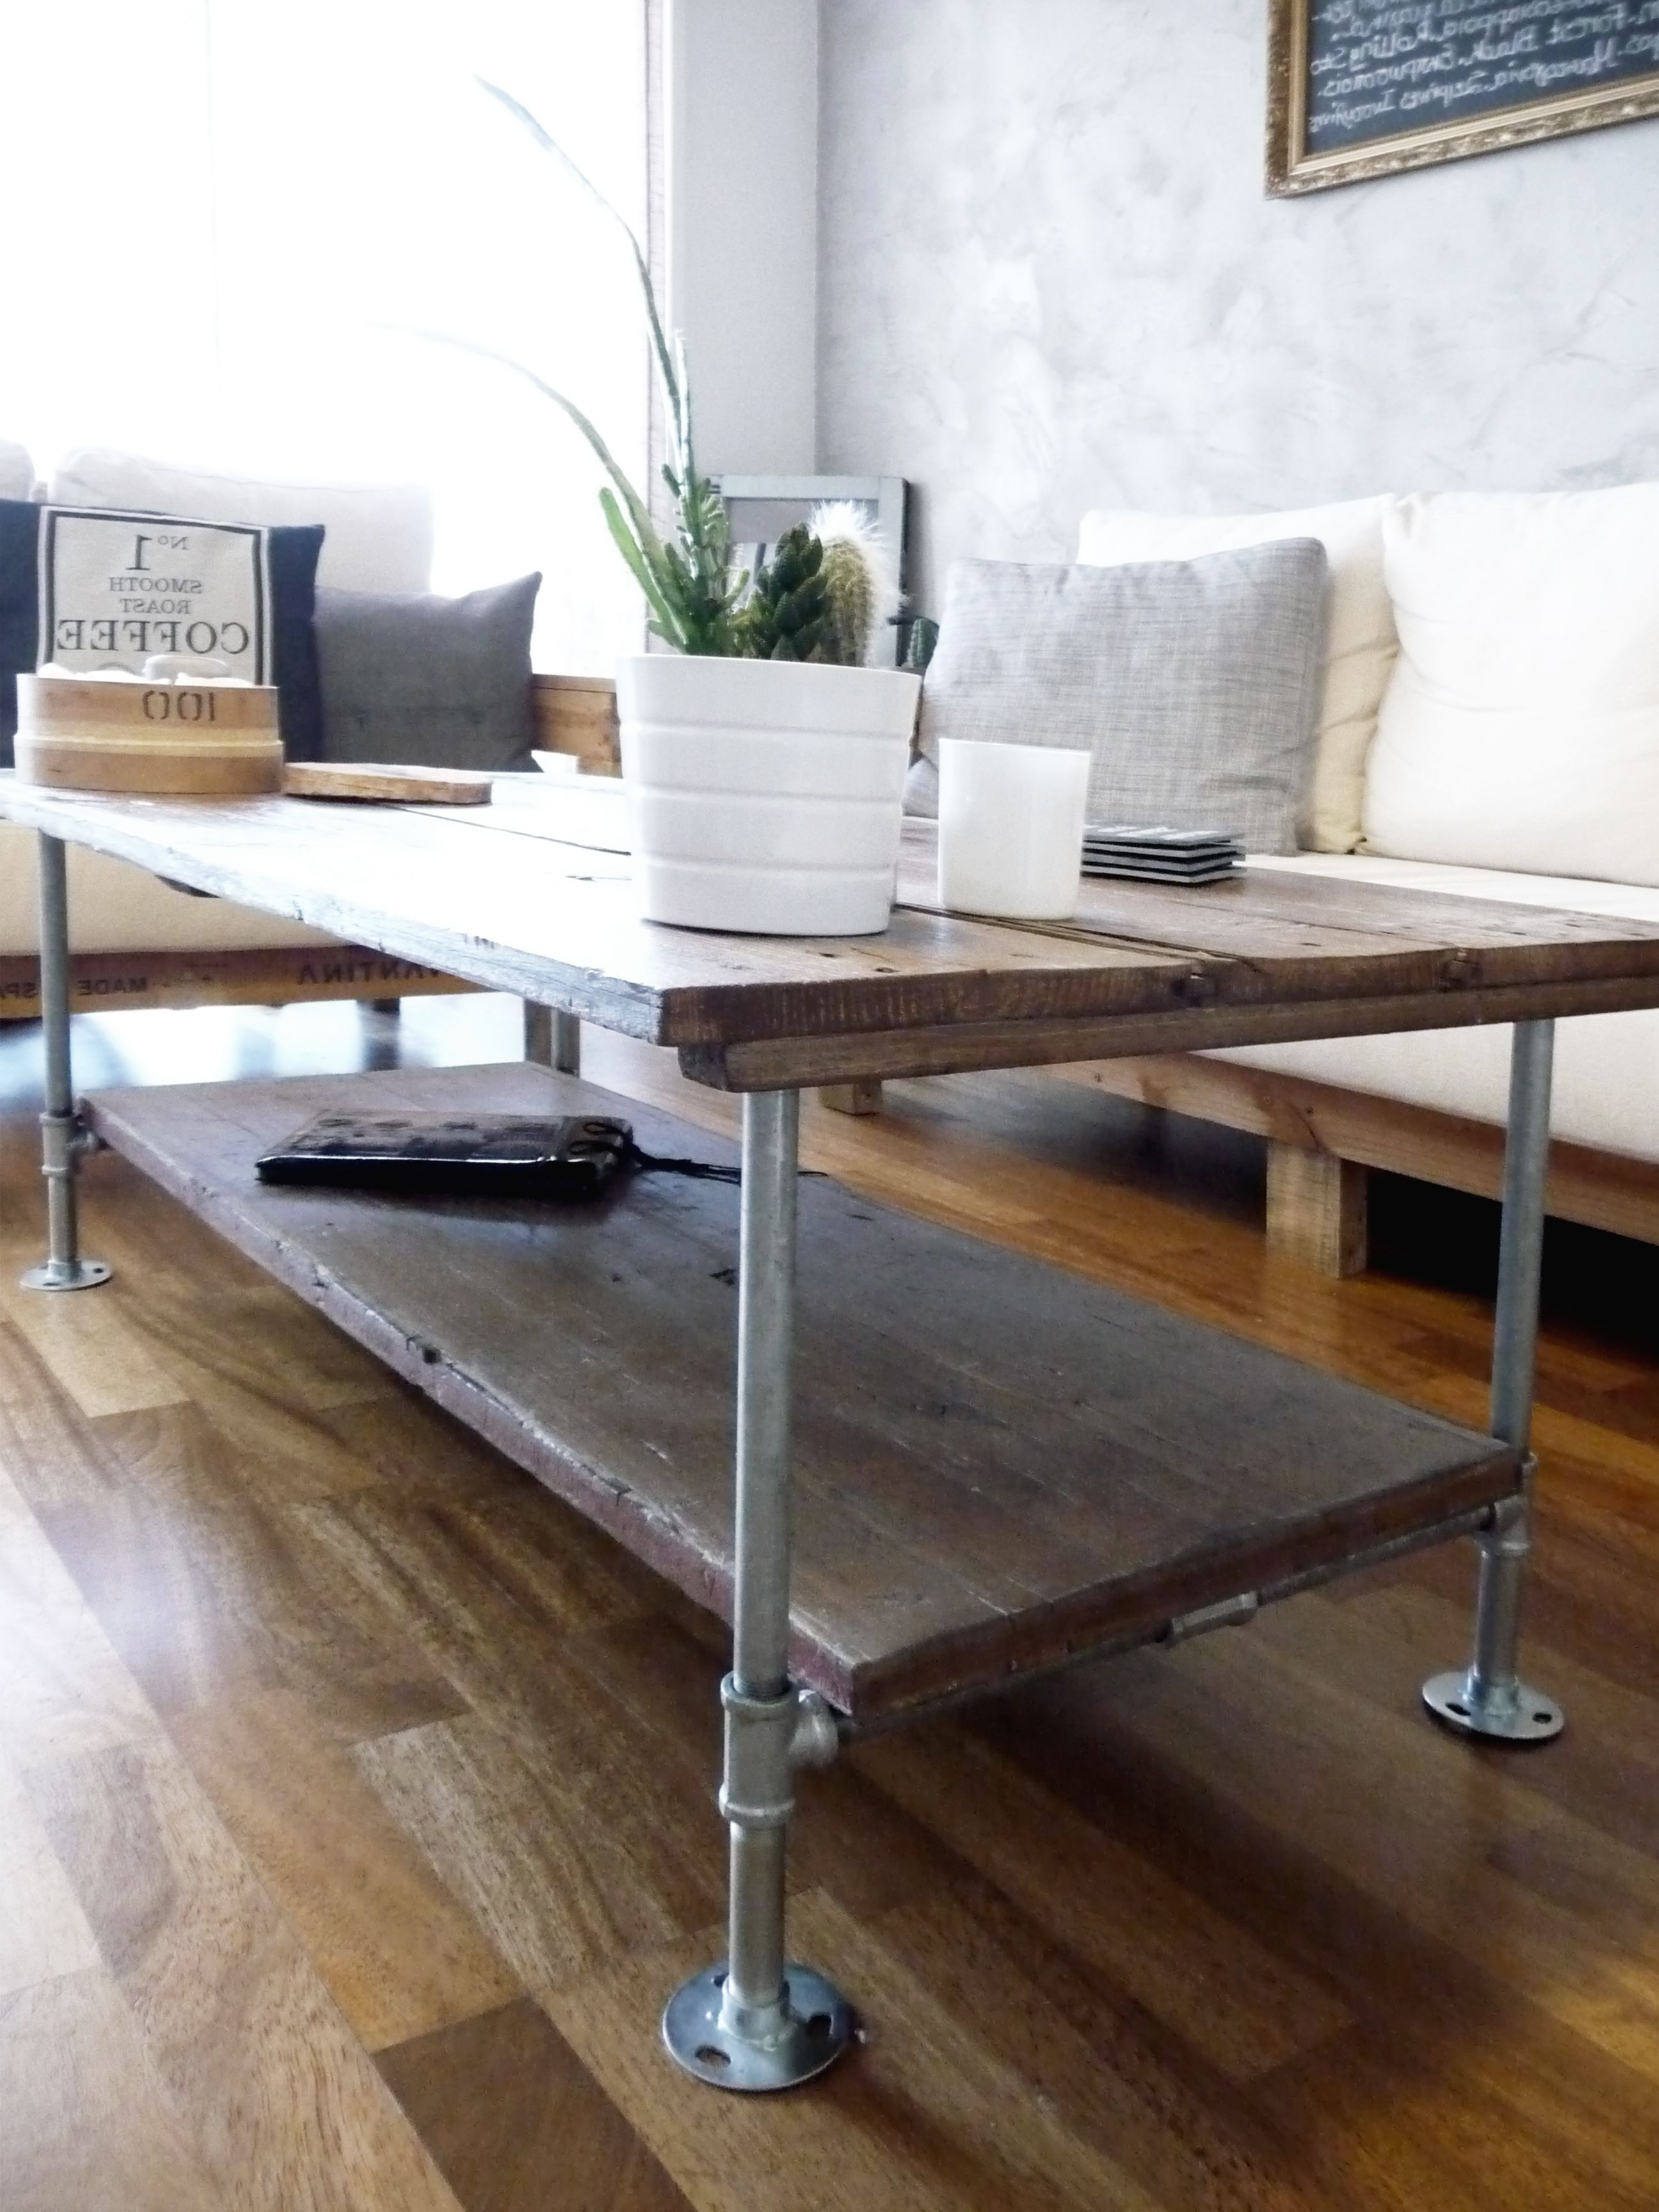 Diy Coffee Table With Wood And Galvanized Steel Pipes Rustic (View 4 of 20)